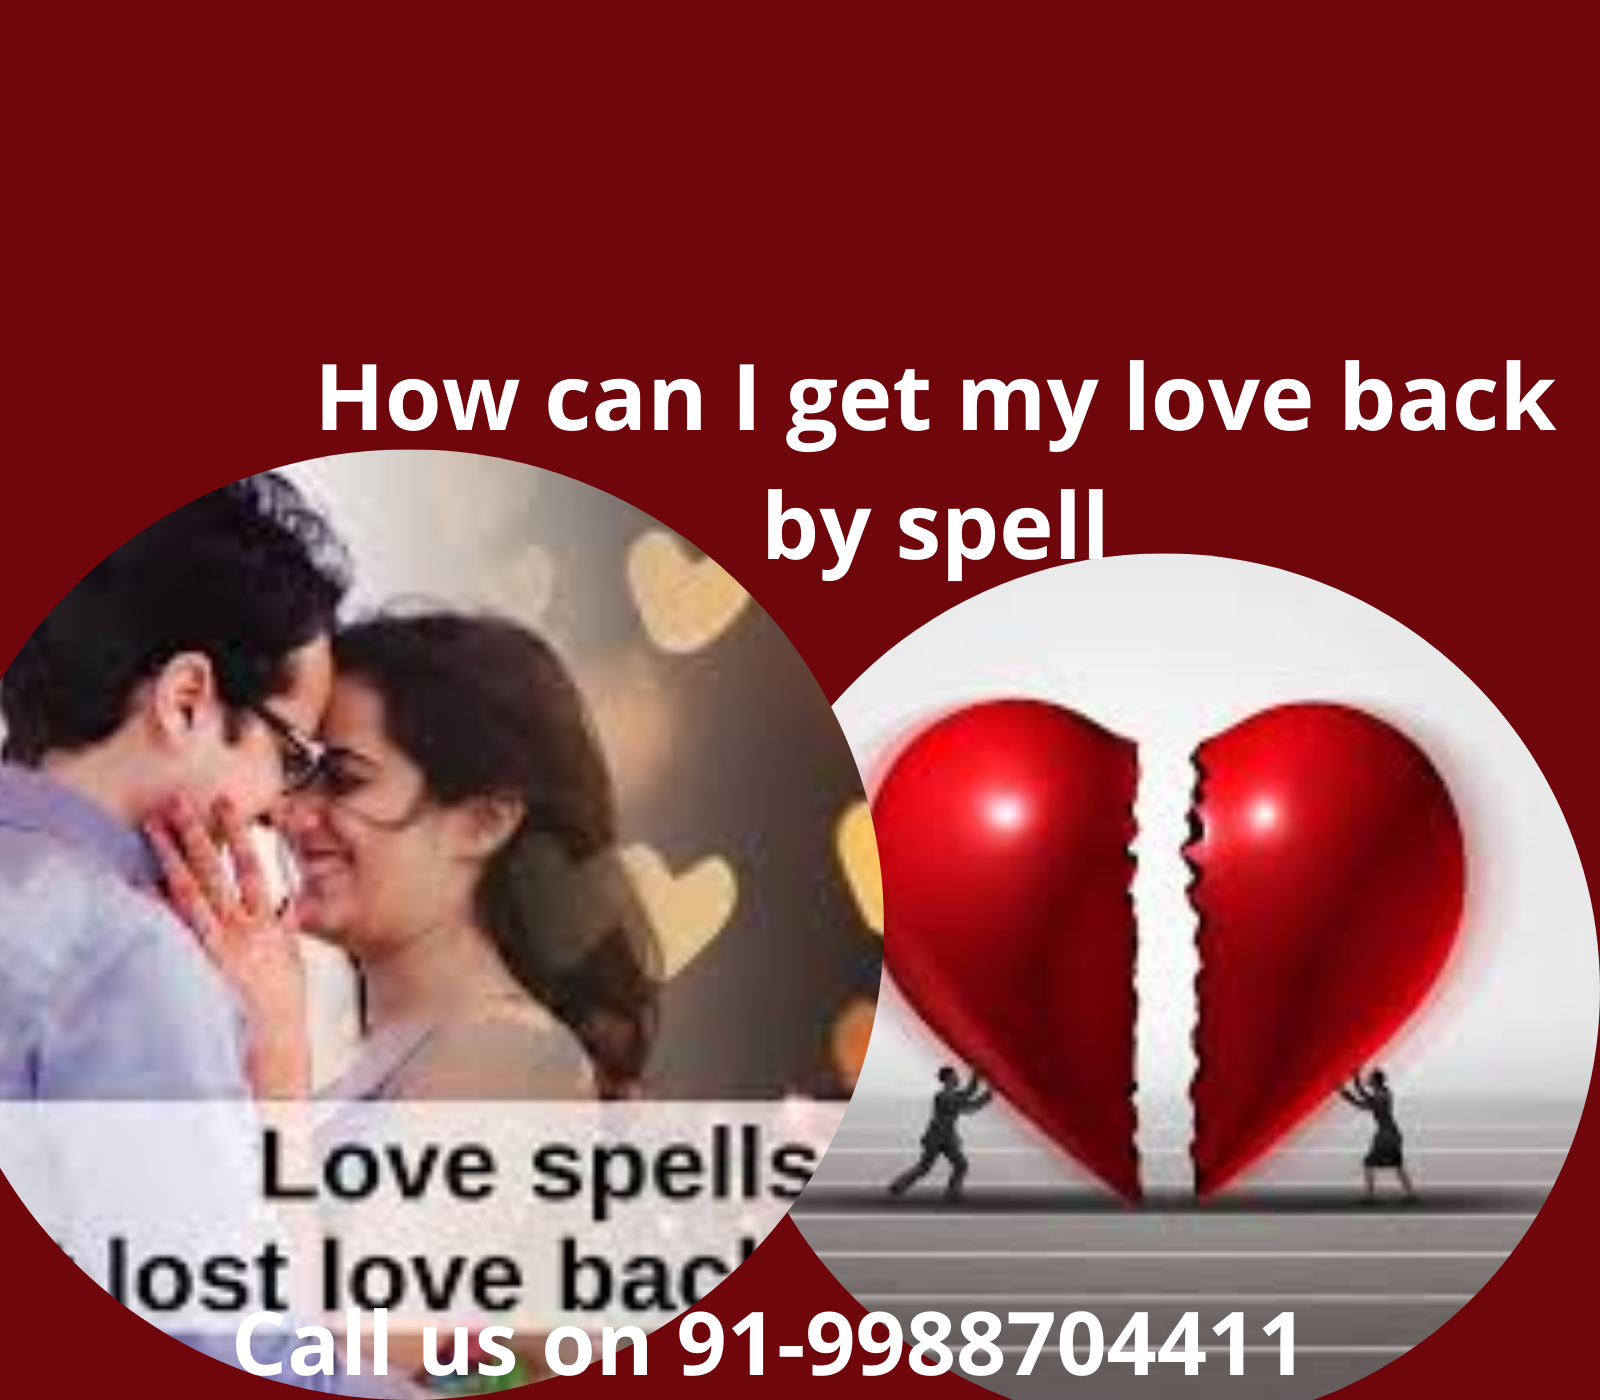 How can I get my love back by spell